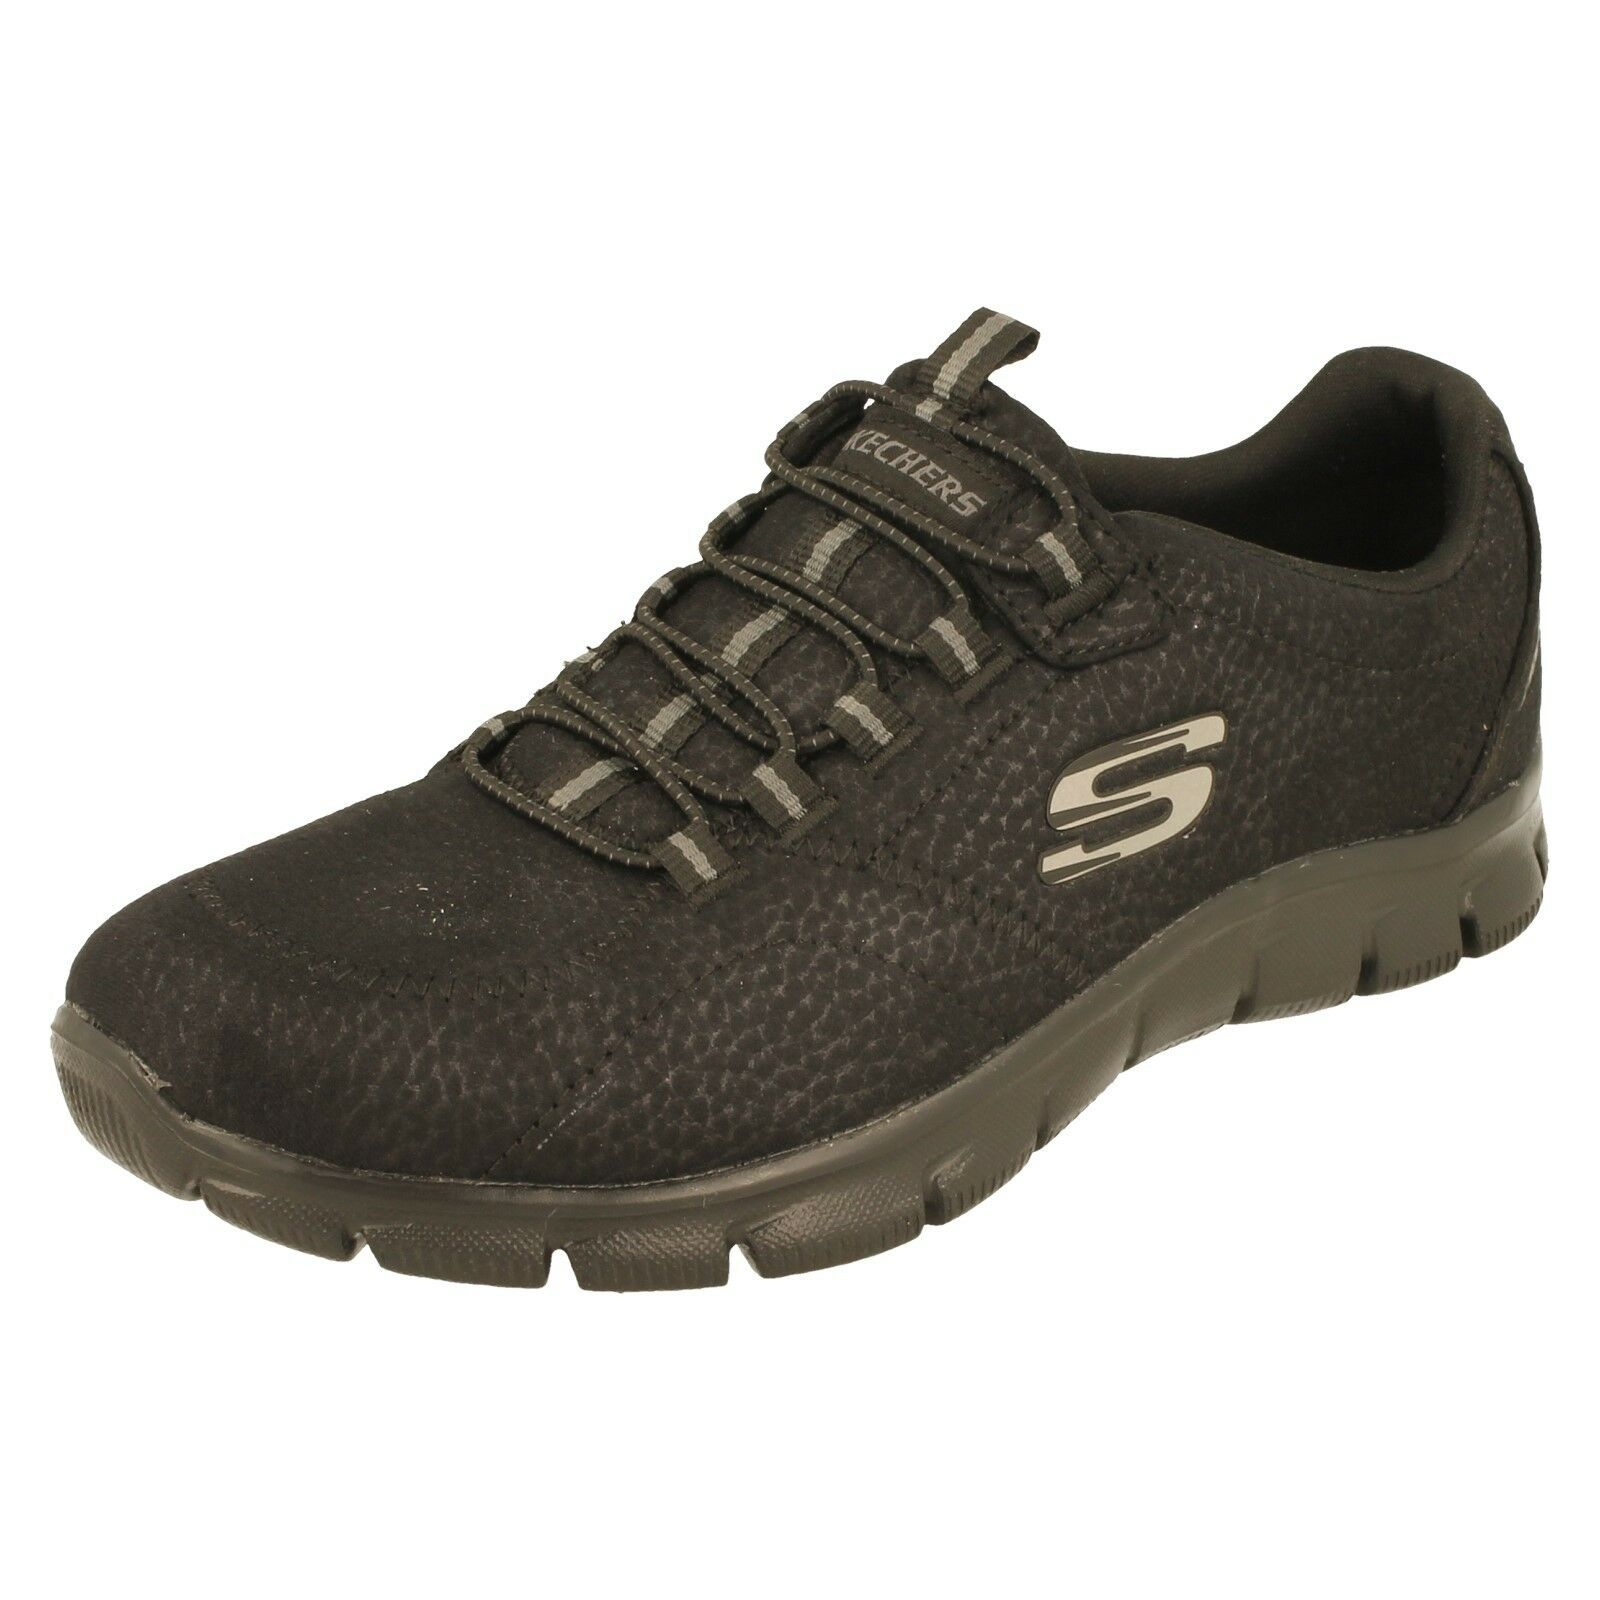 donna Take Skechers Scarpe sportive - Take donna Charge a60149